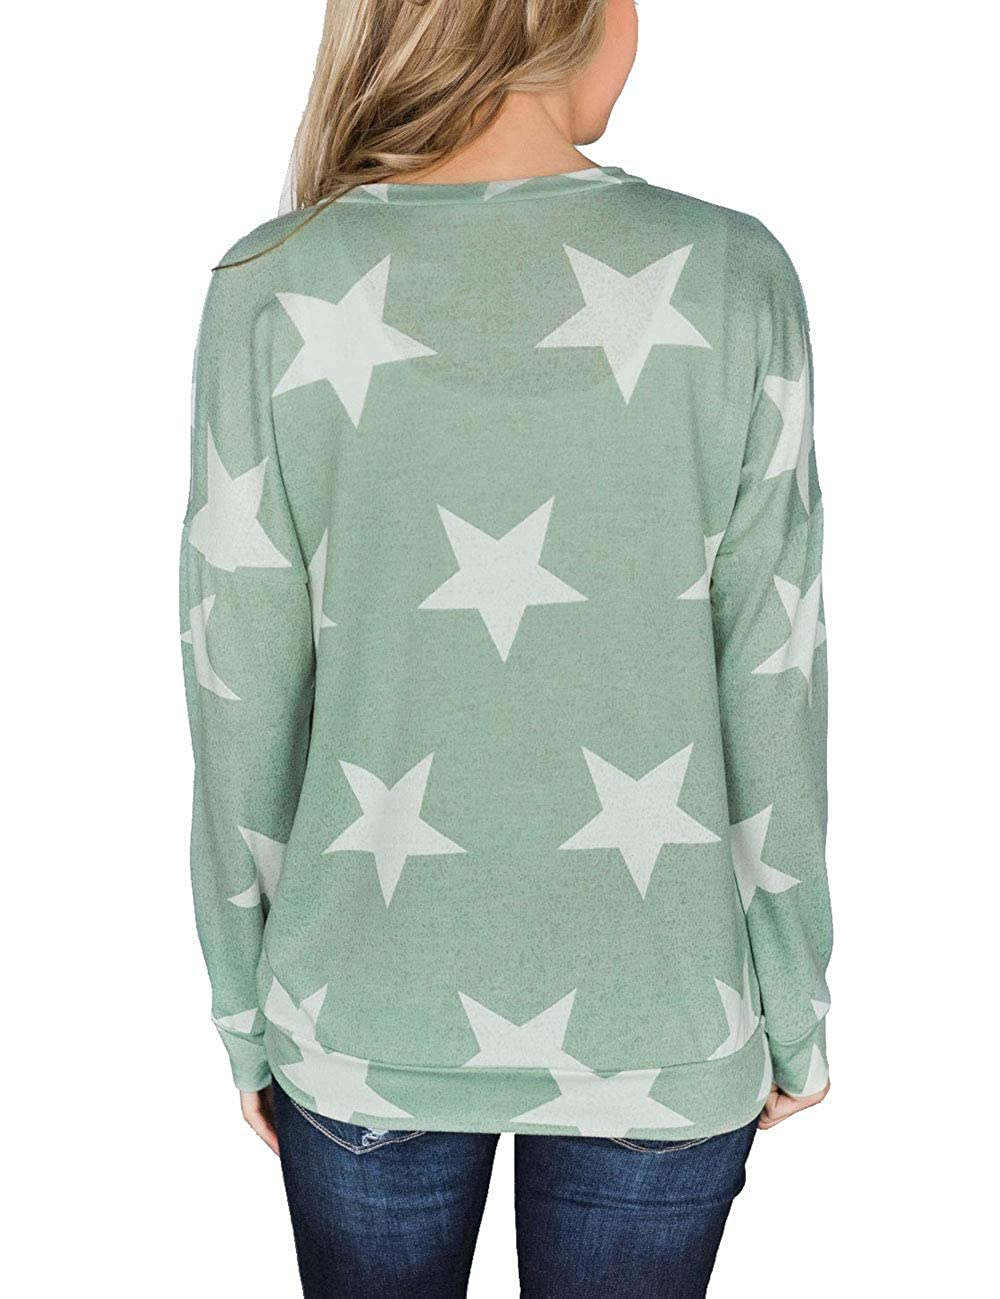 Angsuttc Womens Casual Long Sleeve Sweatshirt Letter Print Round Neck Loose Pullover Top